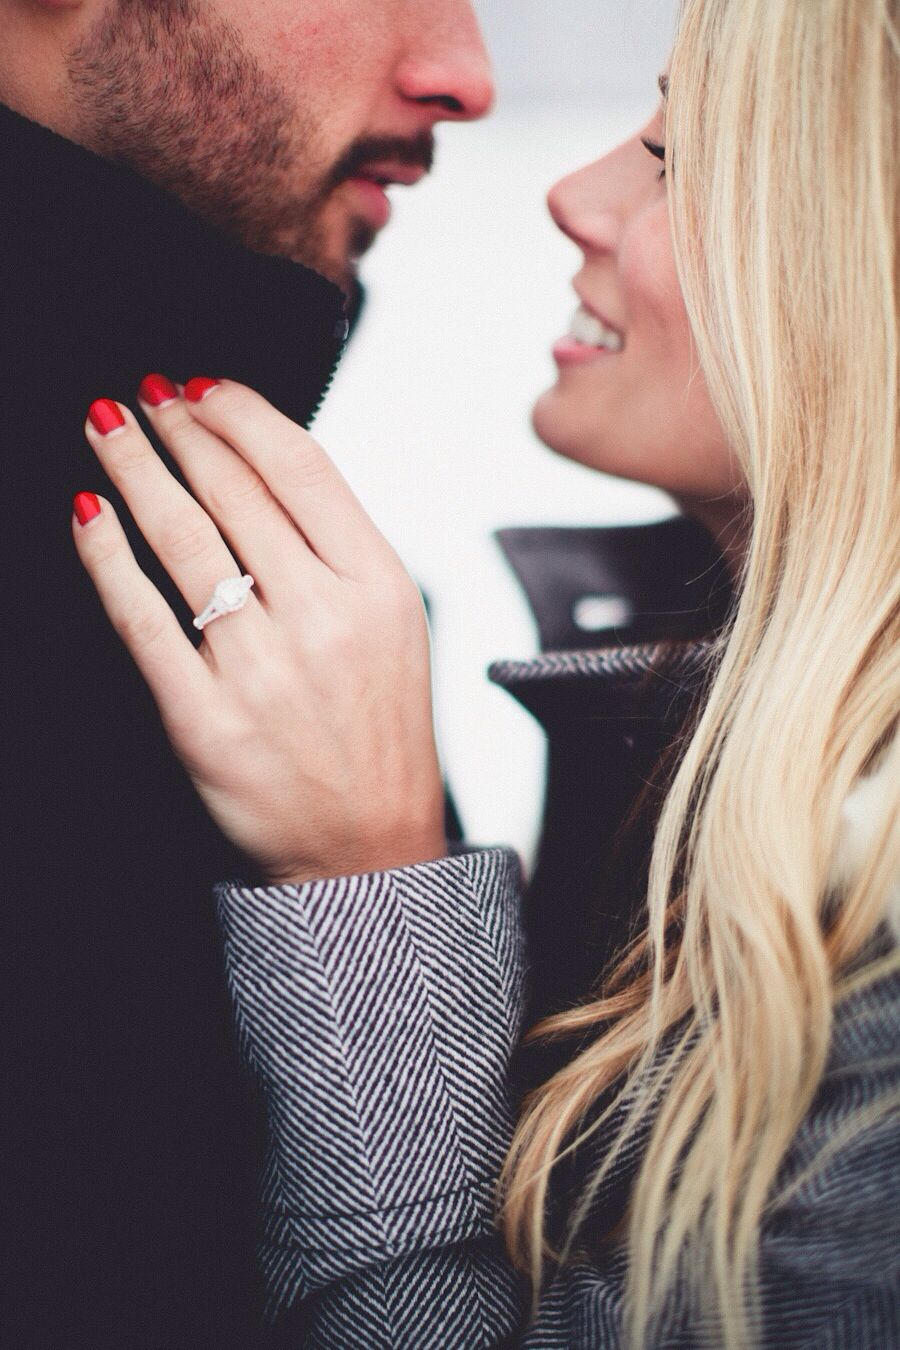 Like how it shows off the ring but doesnt cut out their faces